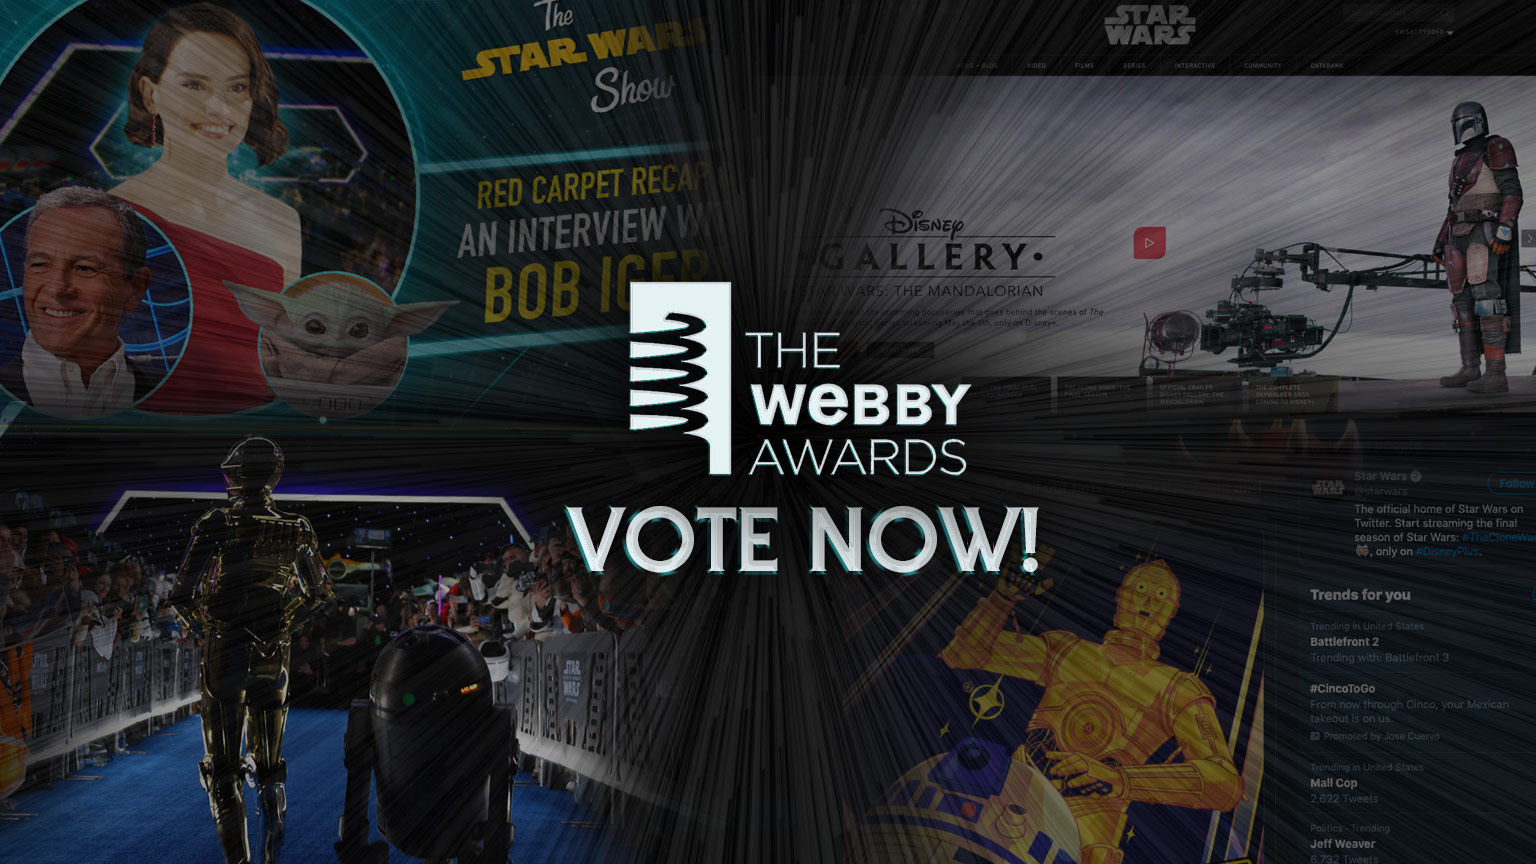 Star Wars montage with the Webbys logo